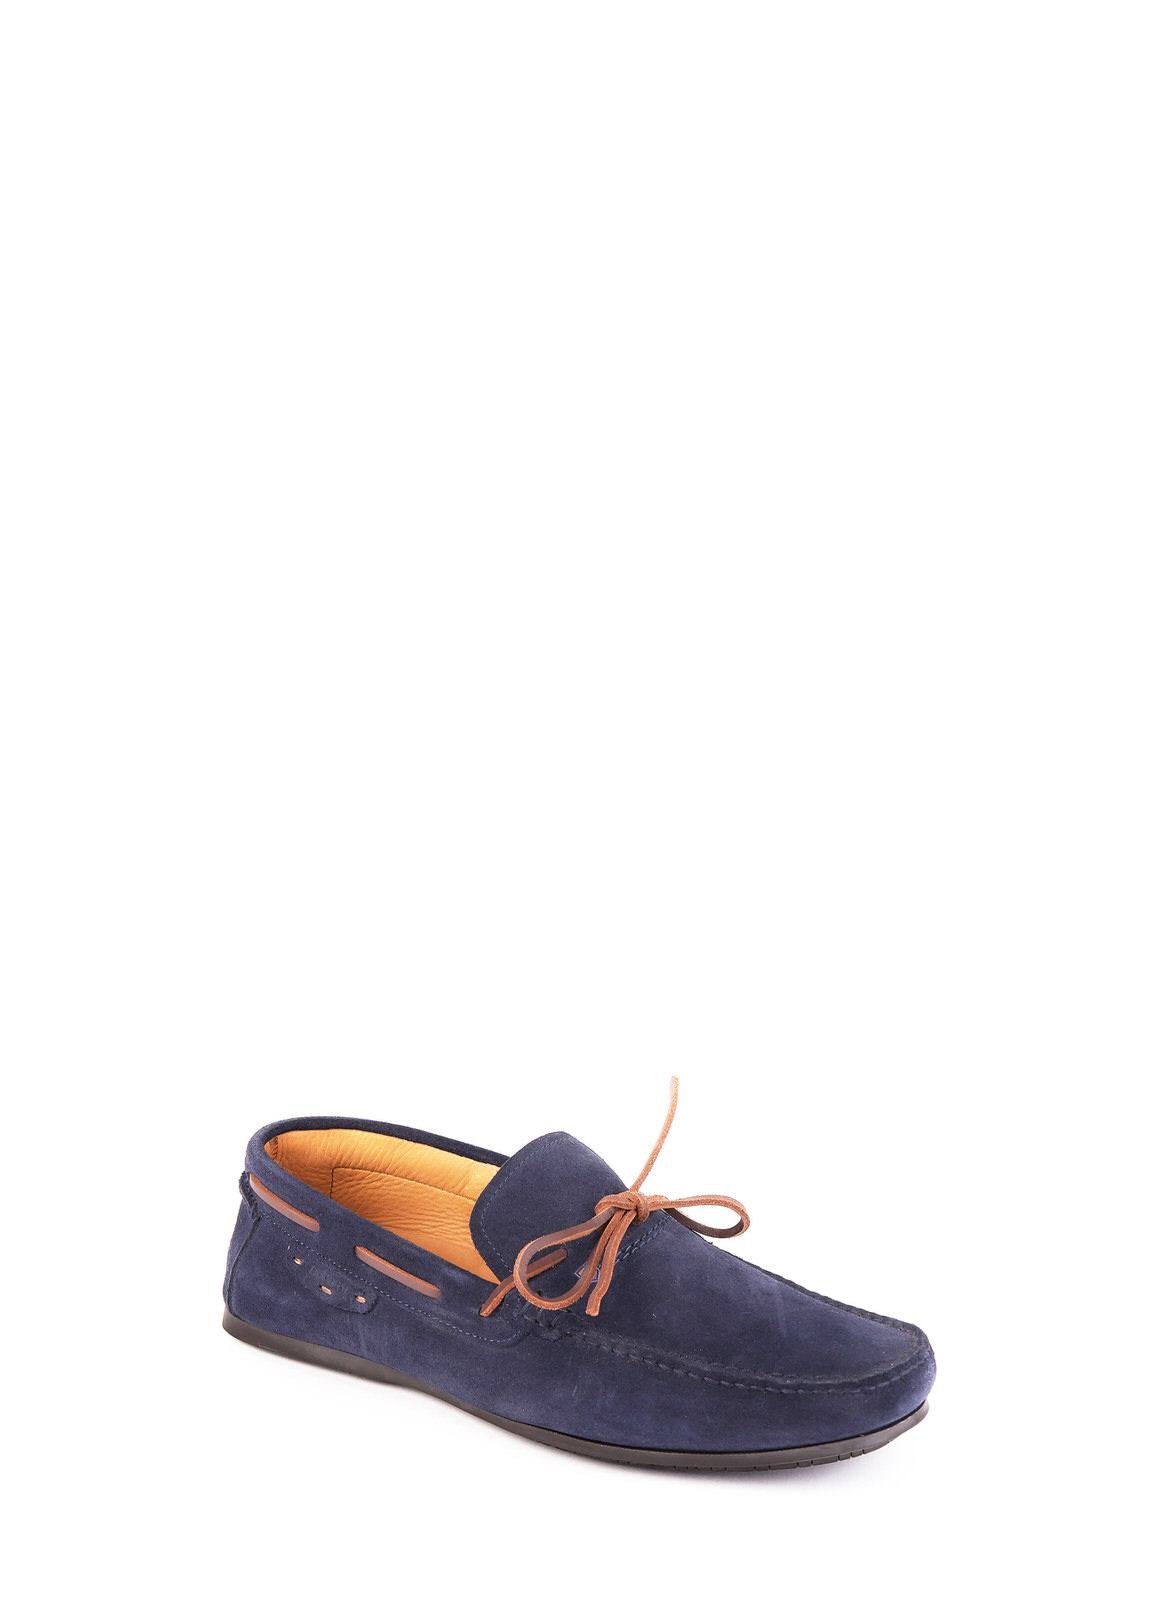 Dubarry_Nevis Moccasin - French Navy_Image_1